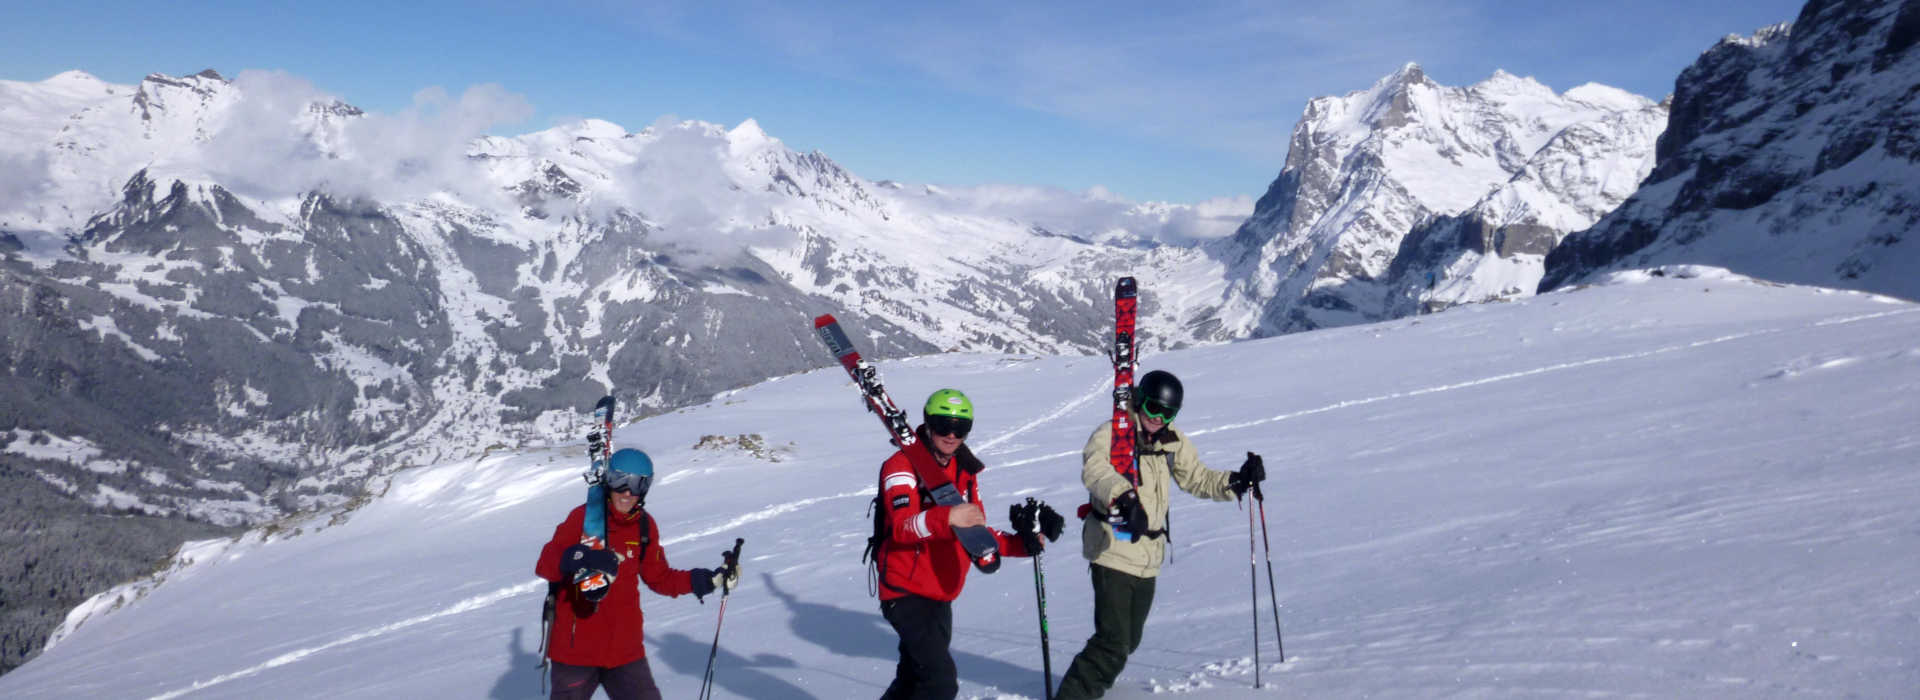 Downhill Only Ski Club - touring picture